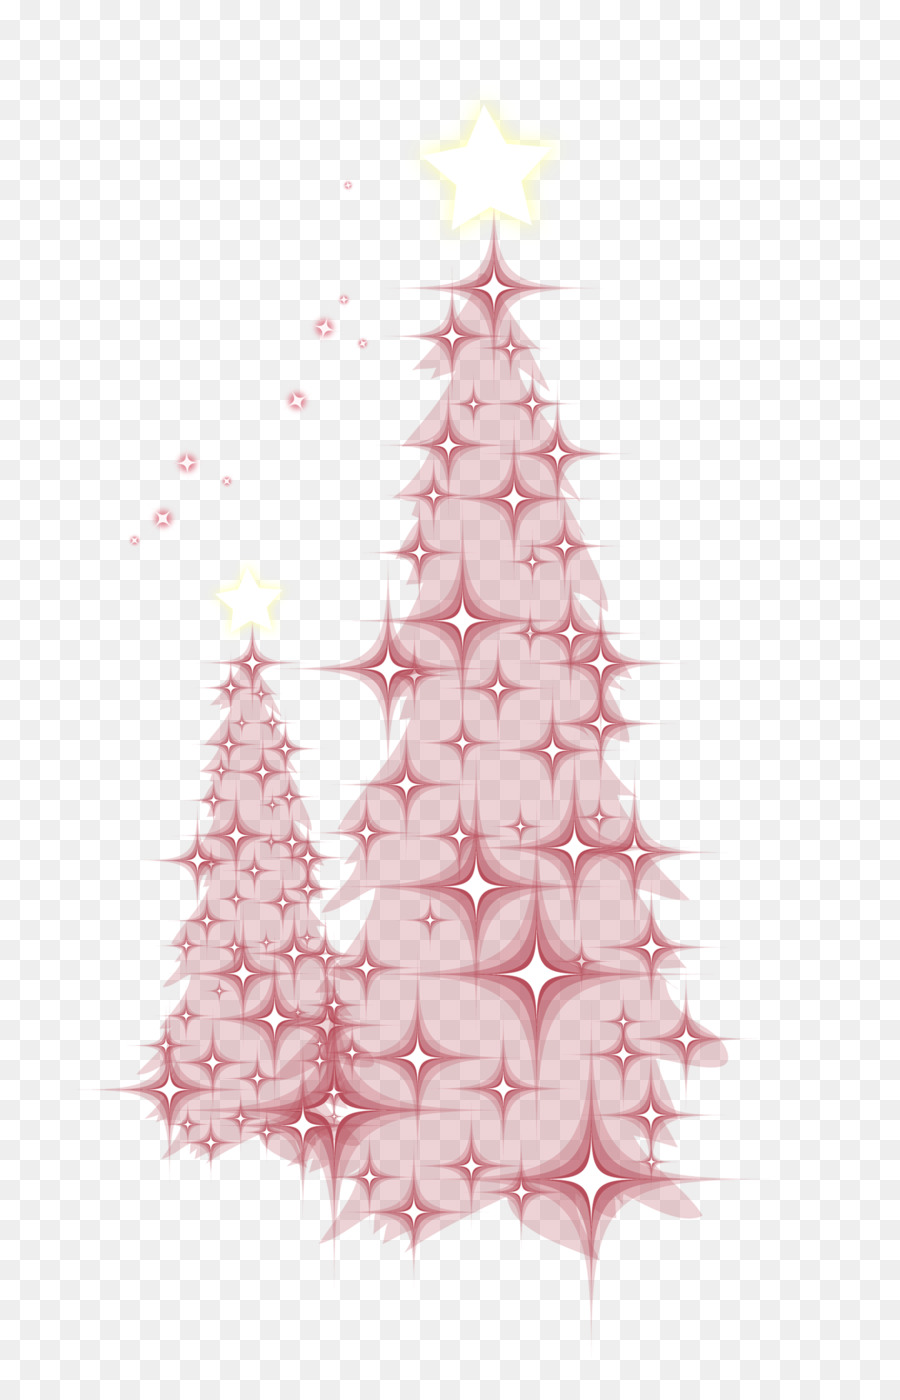 Christmas Tree Pink Png Download 4957 7611 Free Transparent